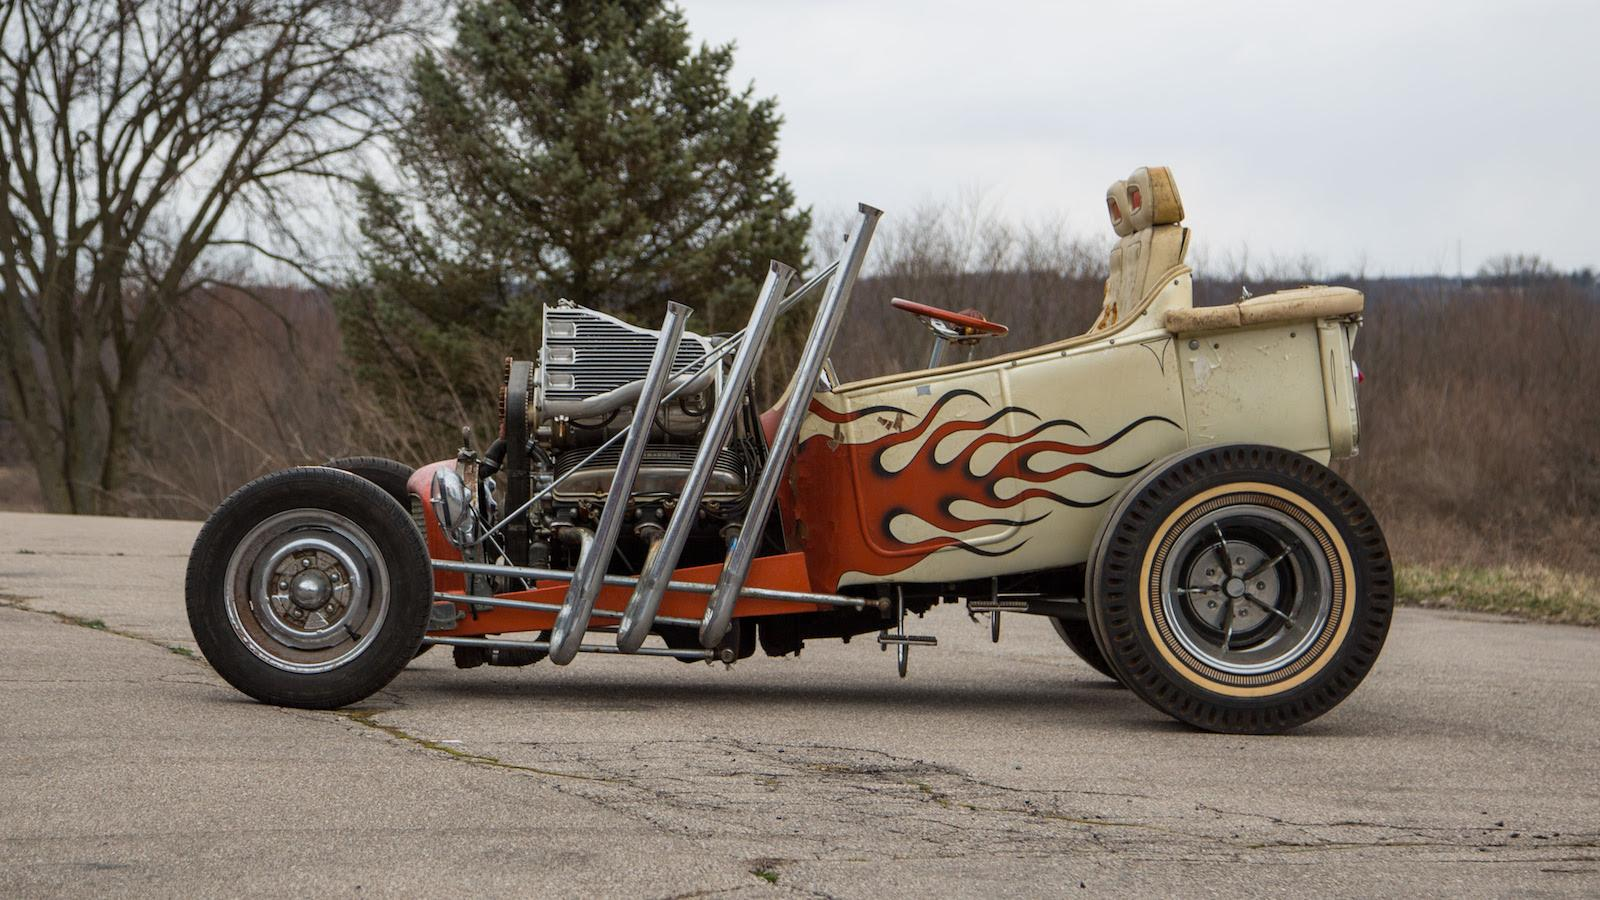 Jim Street\'s Kookie\'s Kar hot rod sells for $440,000! | Autoclassics.com